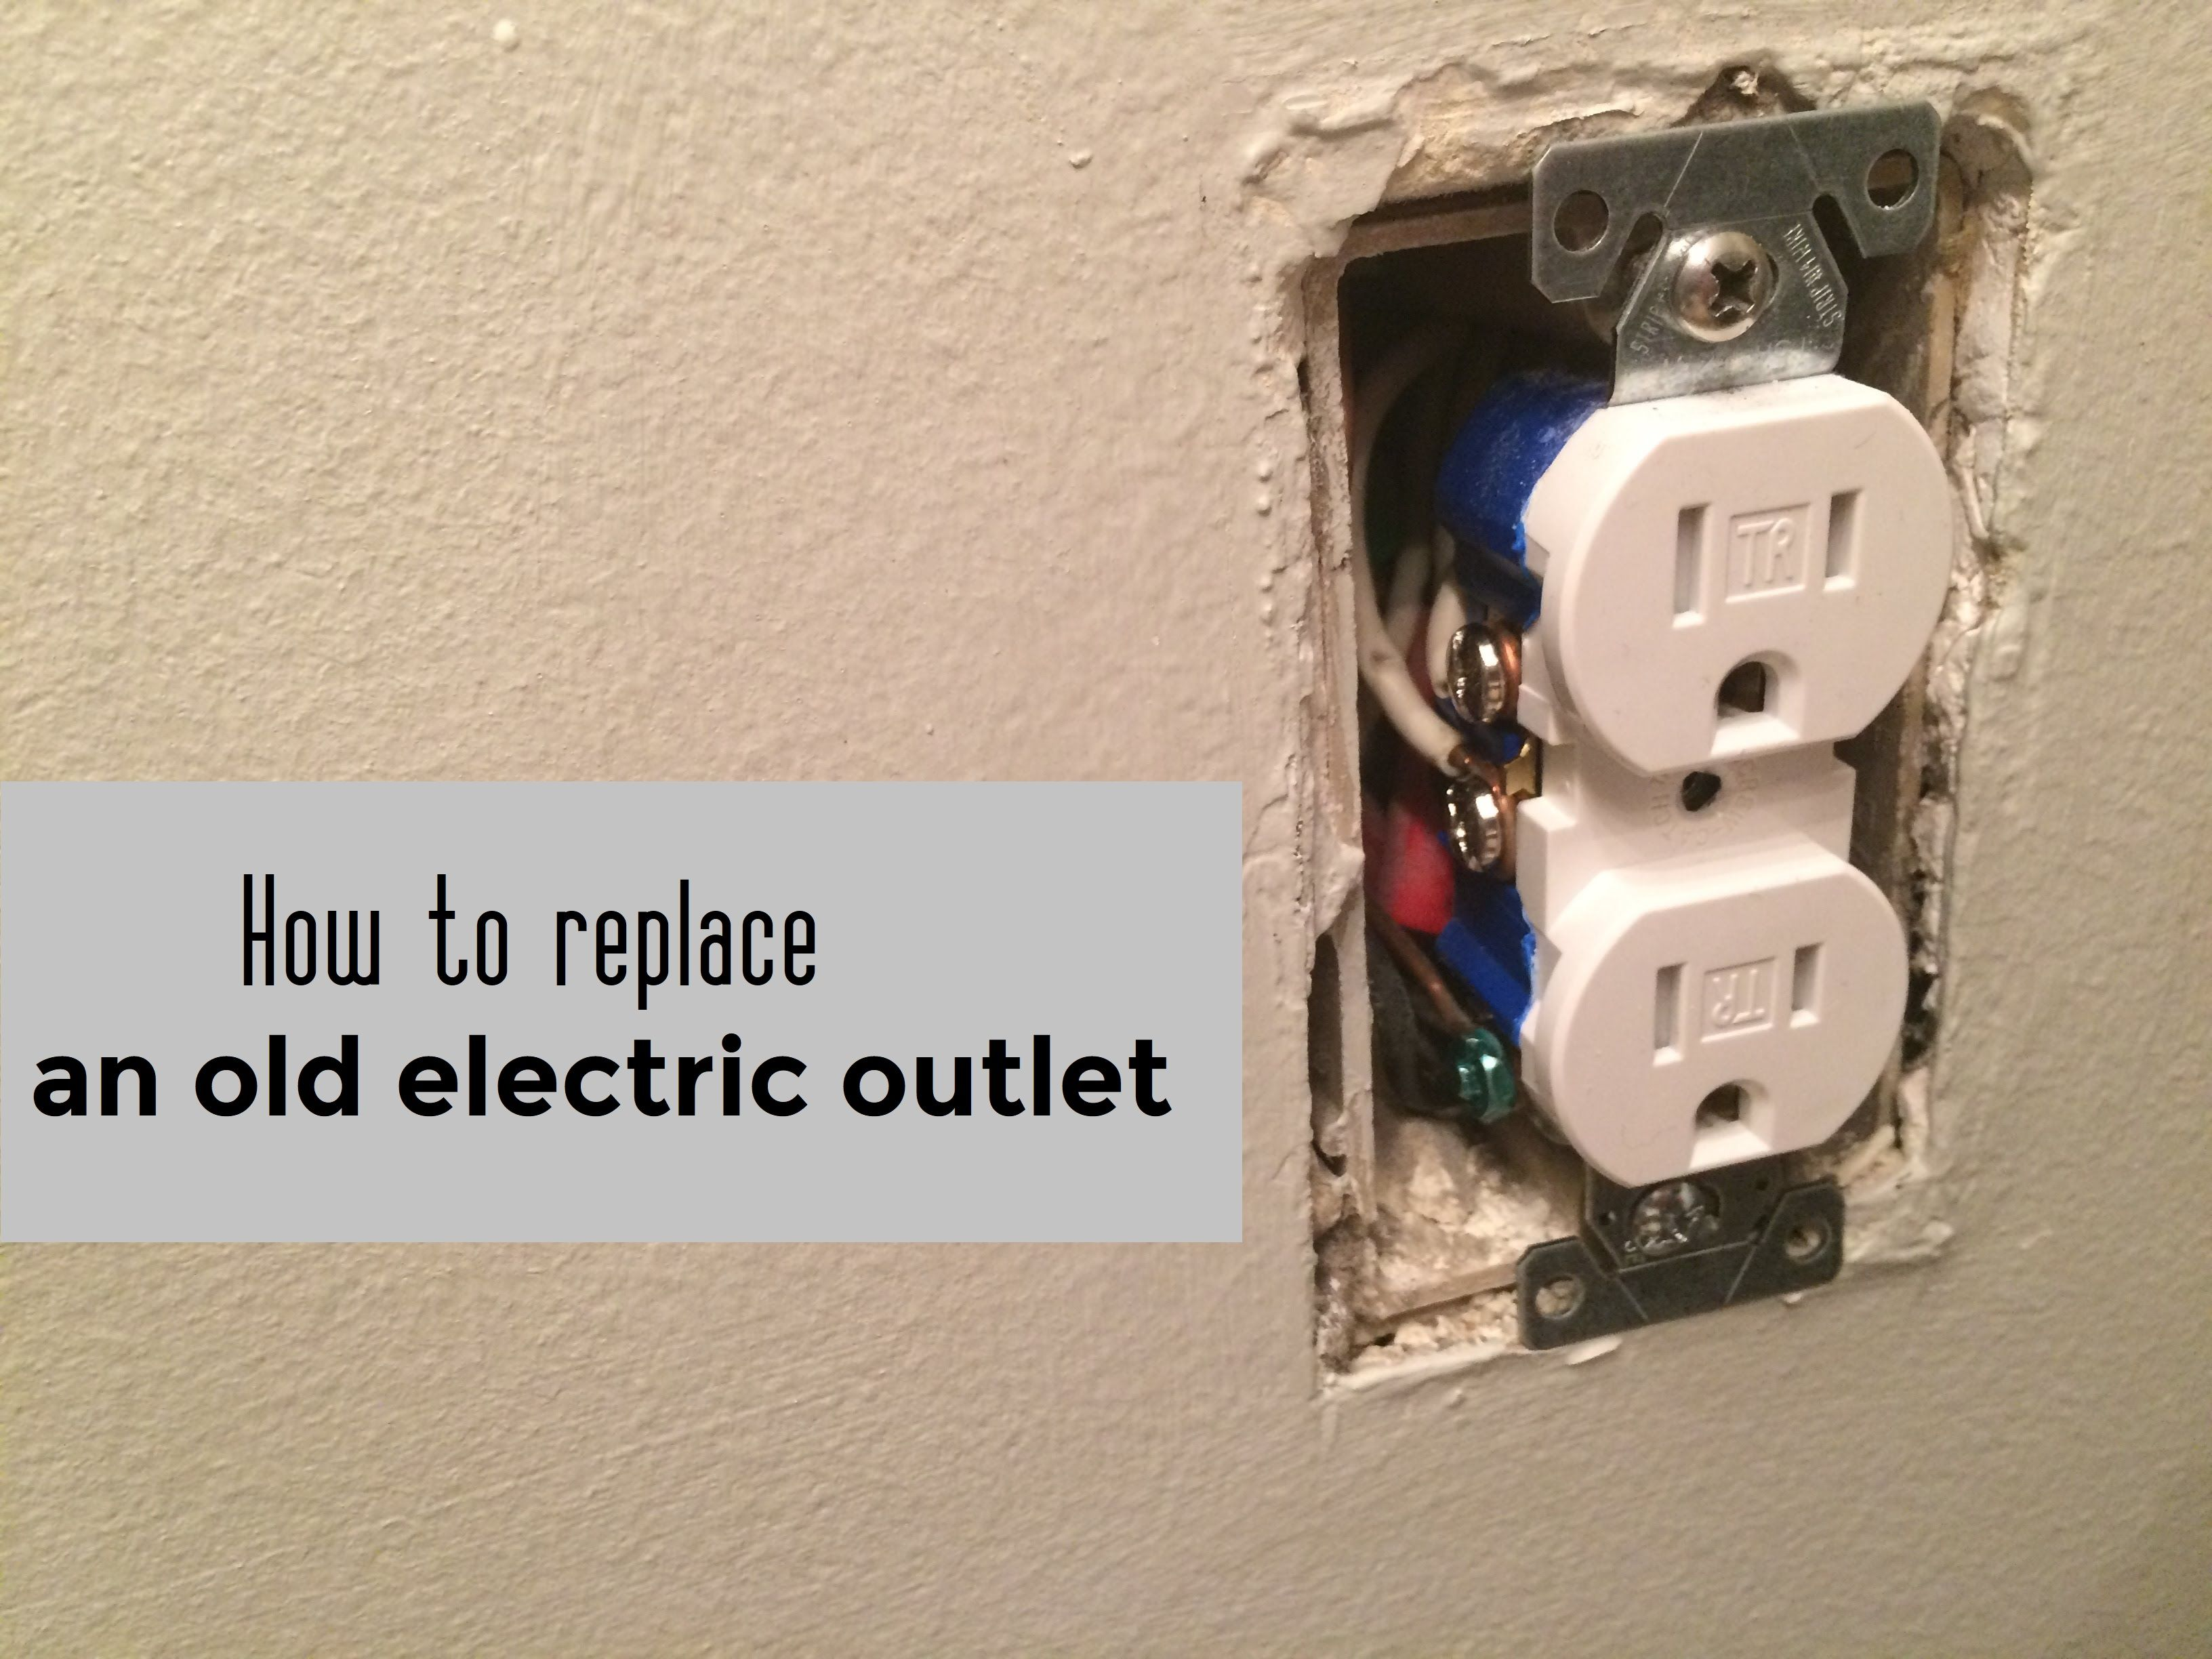 how to replace an old electric outlet diy doityourself outlet electrical electric [ 3264 x 2448 Pixel ]